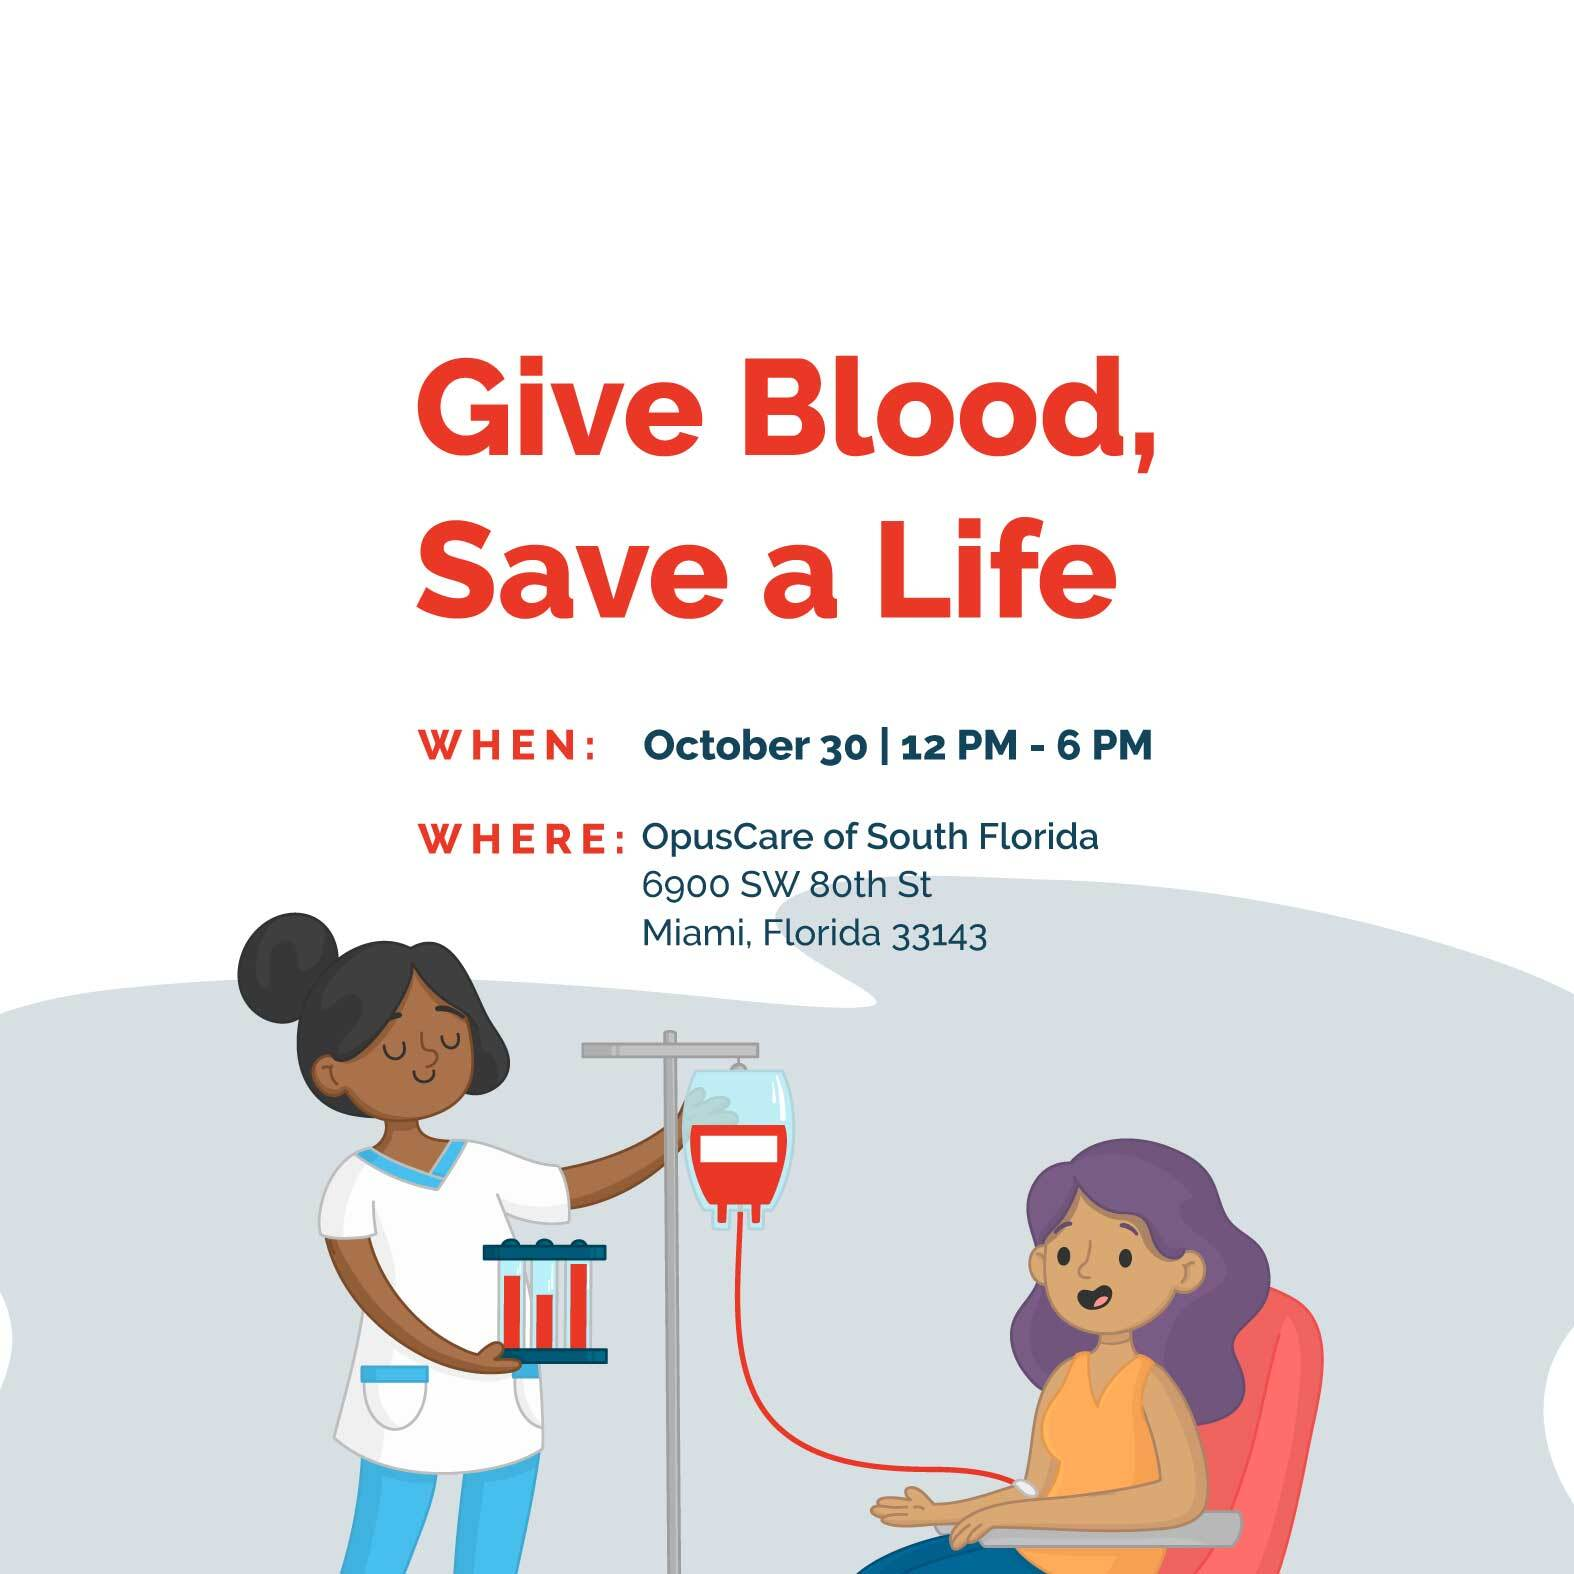 Give Blood, Save a Life. Oct. 30, 12 - 6 PM (mobile)